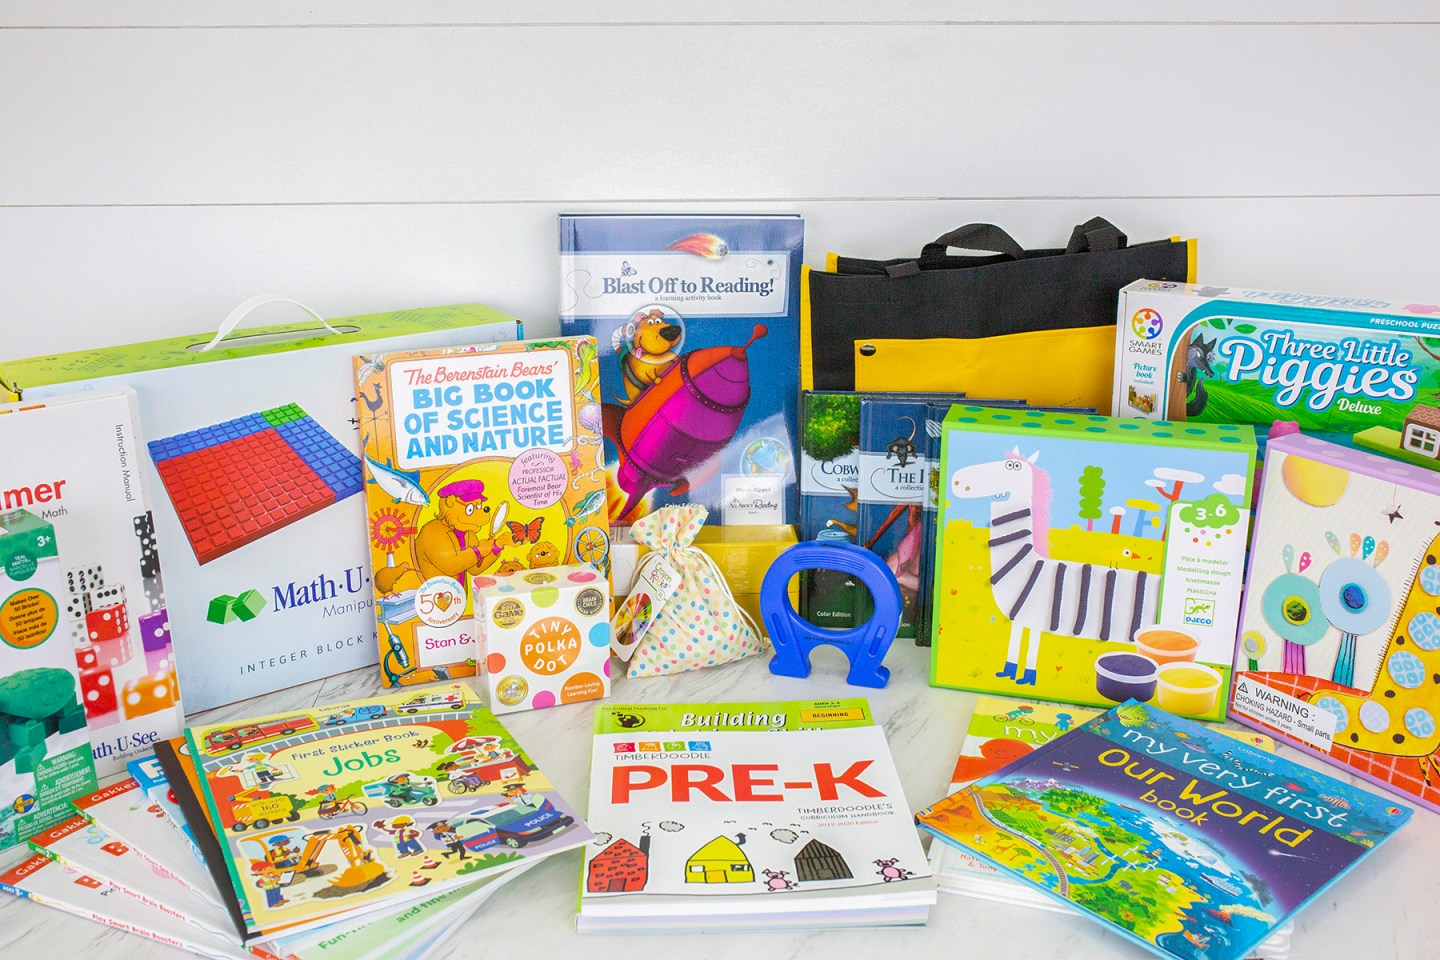 Timberdoodle Preschool Curriculum Kit